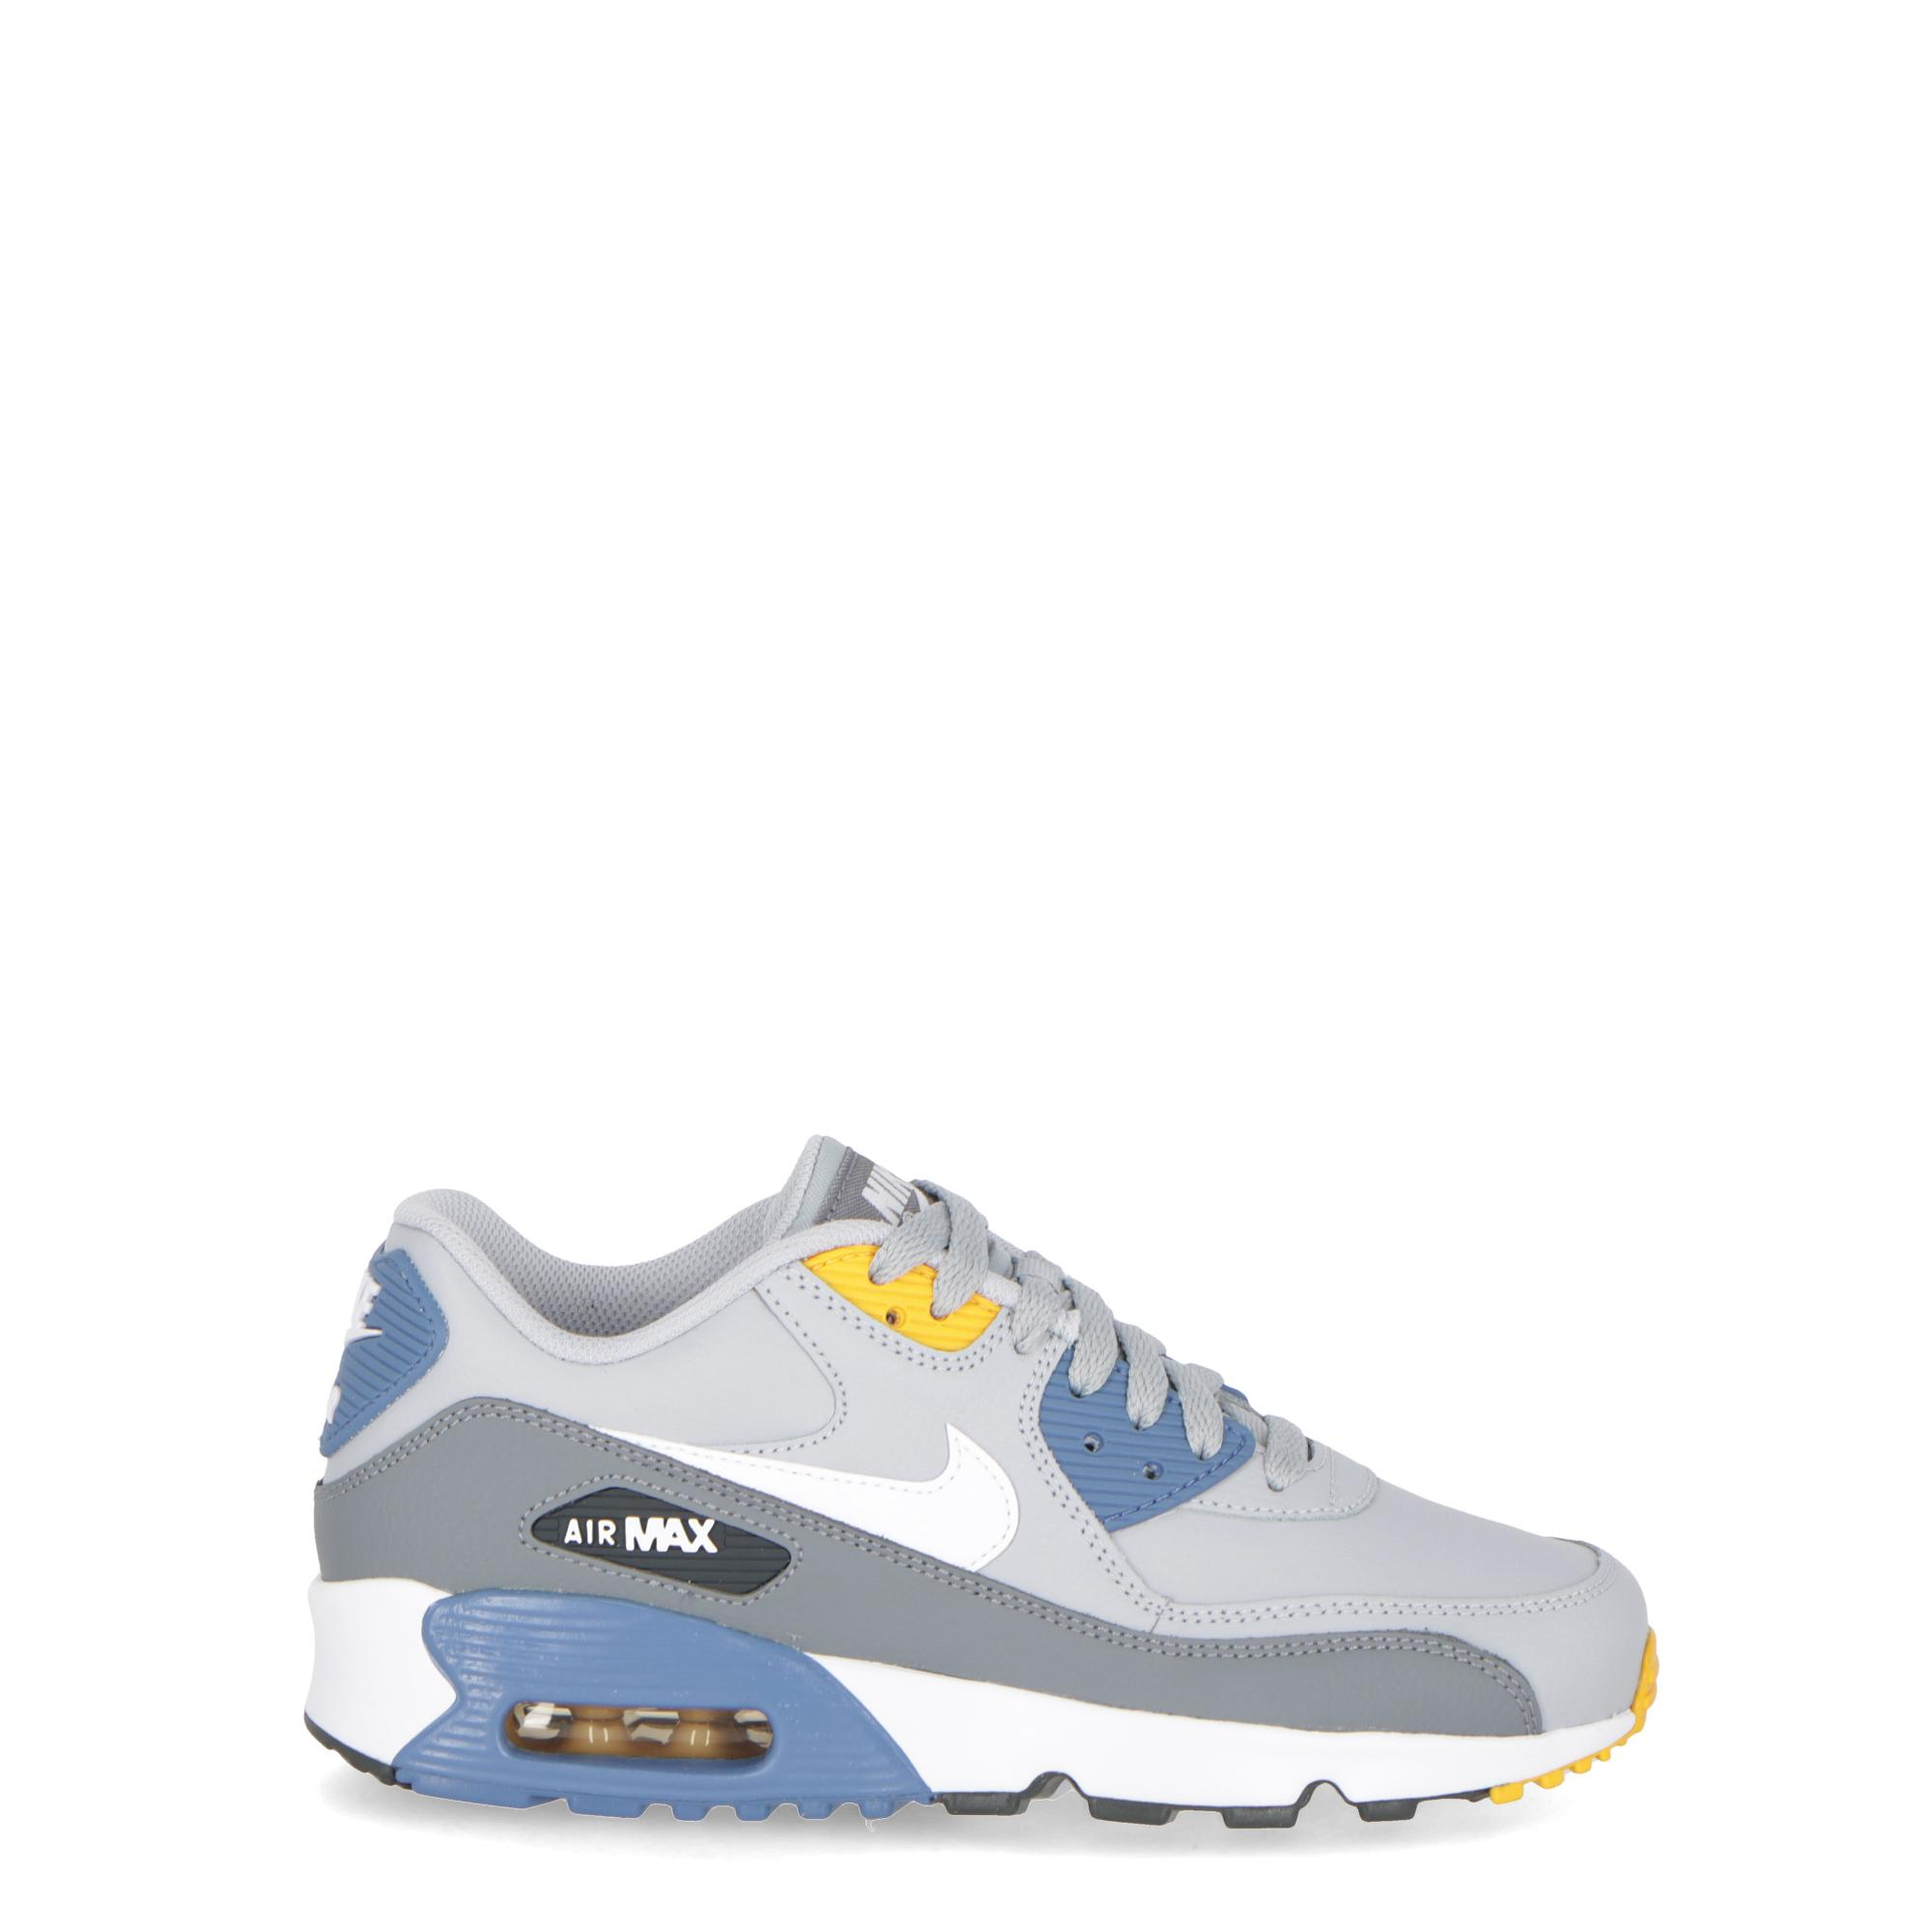 new arrival 4ddaf 99898 Nike Air Max 90 Ltr (gs) - Kids Wolf grey indigo